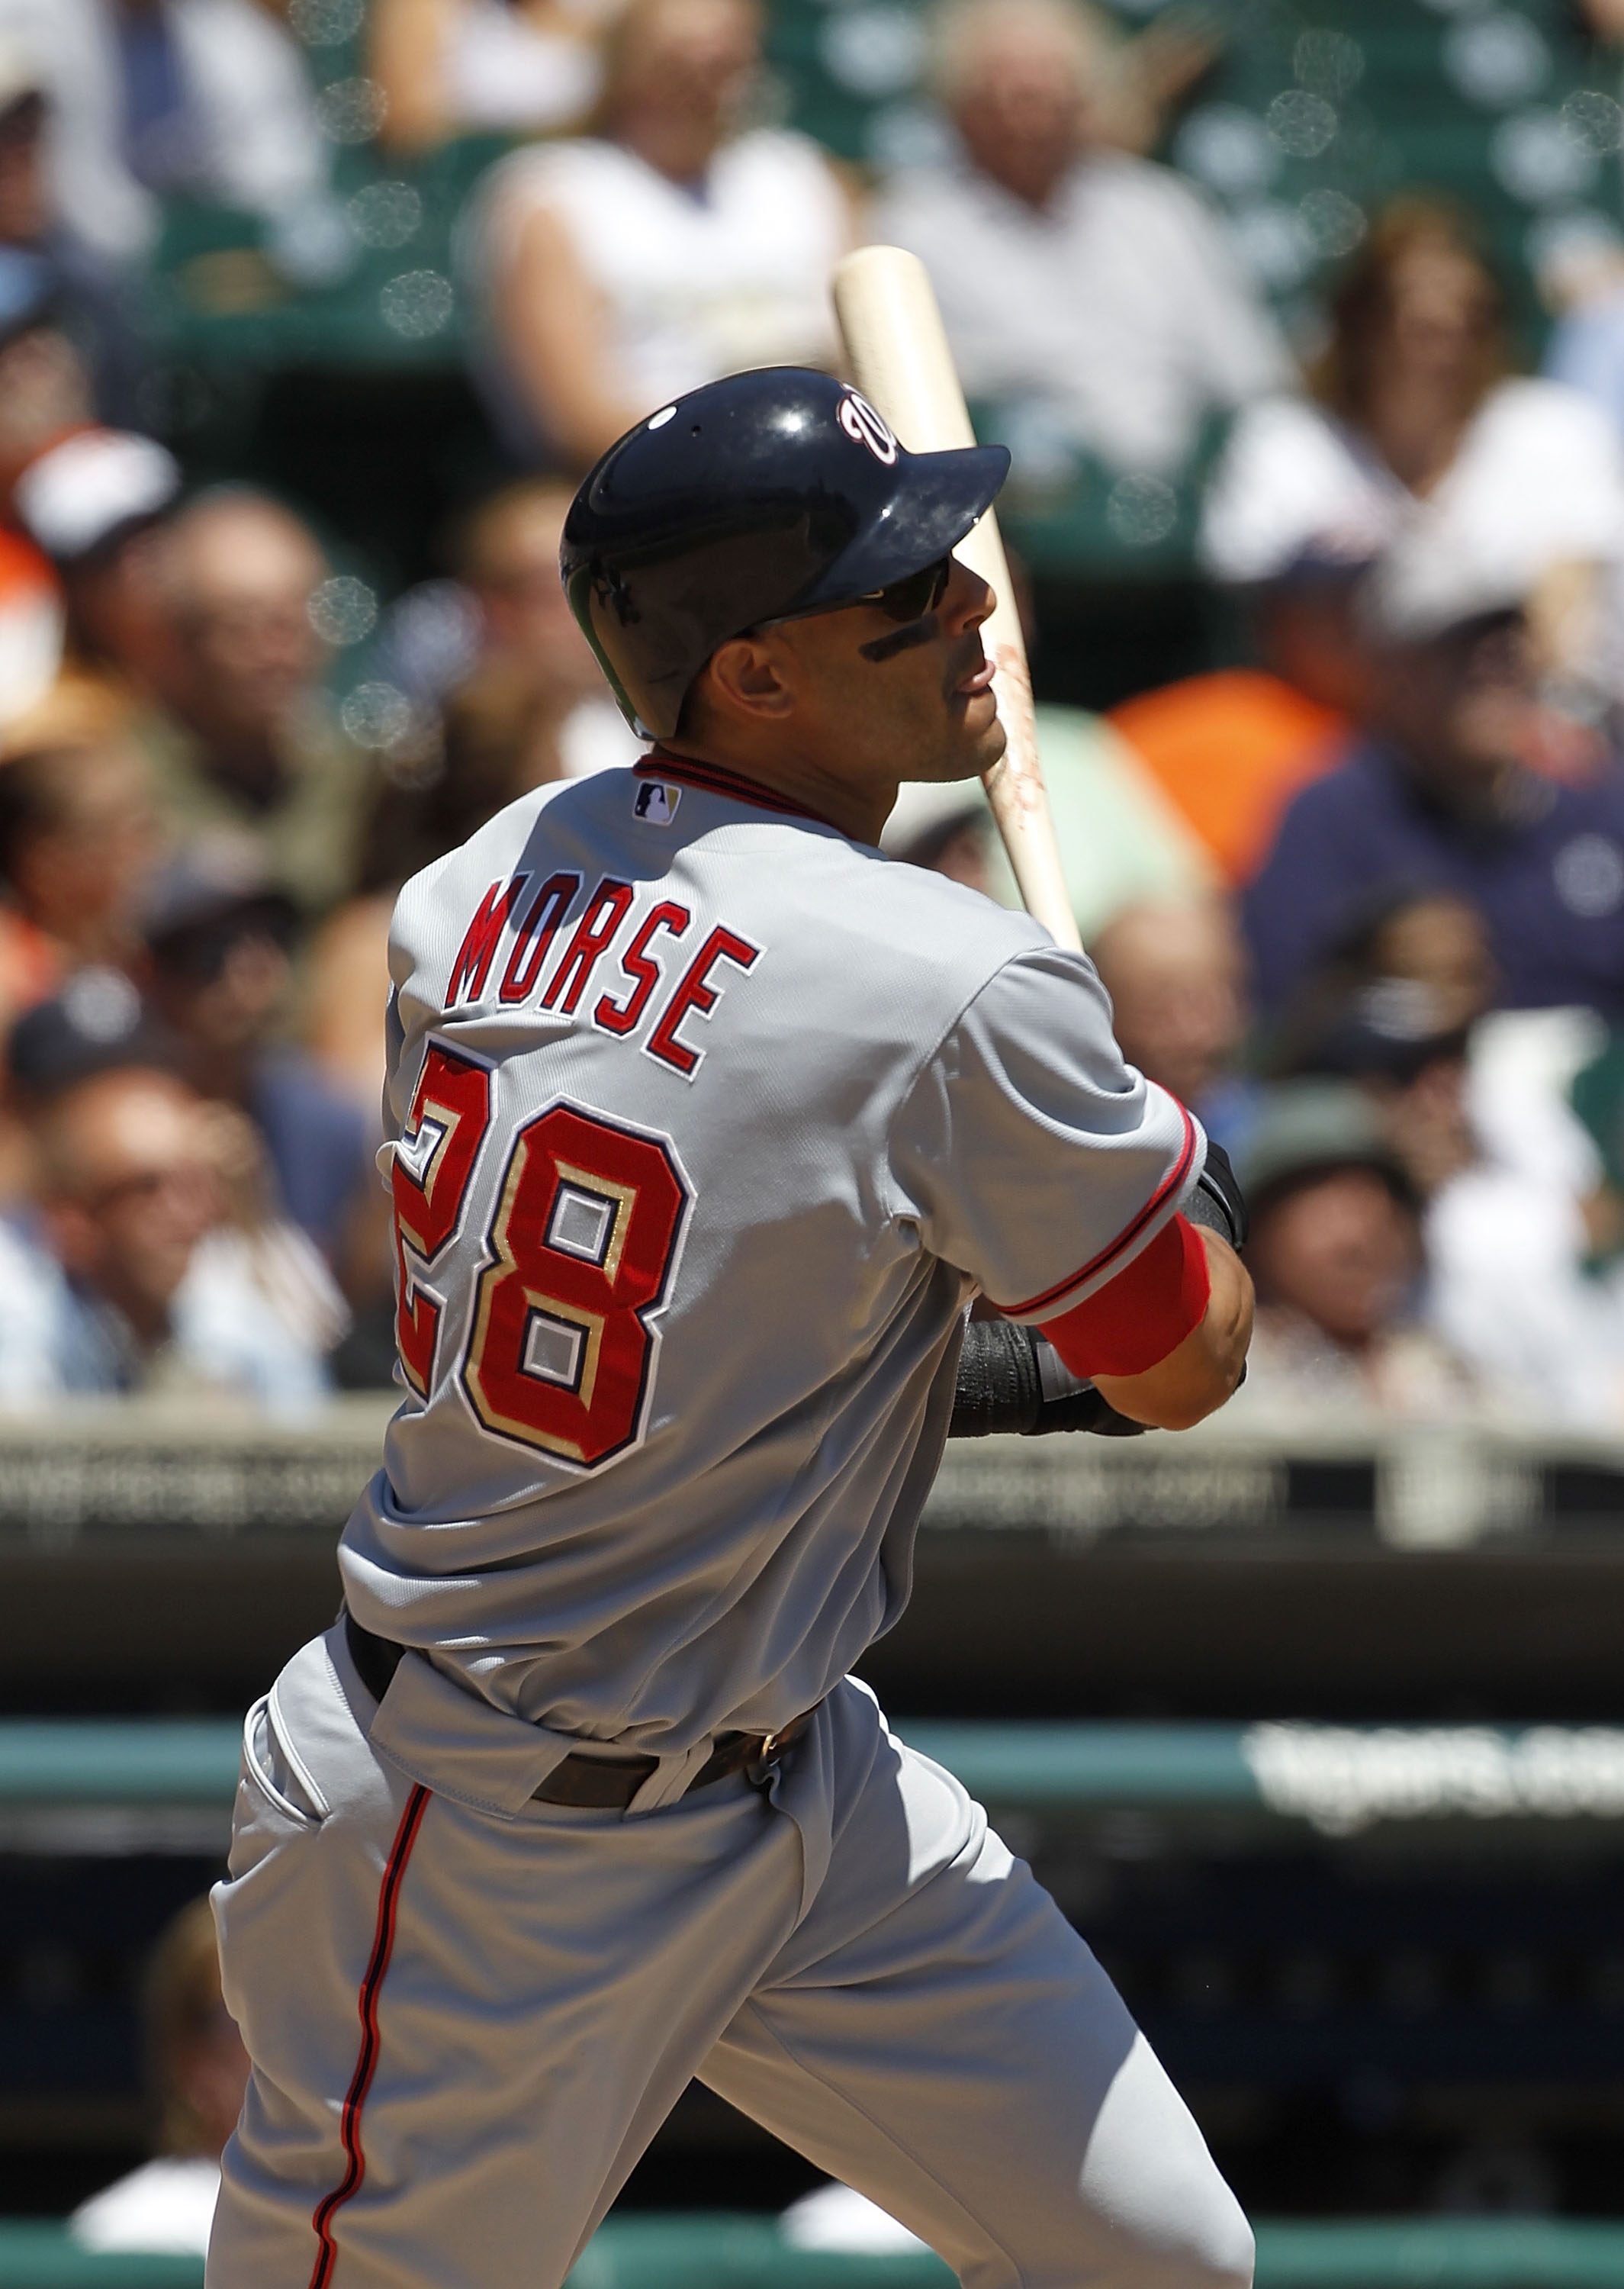 DETROIT - JUNE 17:  Michael Morse #28 of the Washington Nationals bats in the second inning during the game against the Detroit Tigers on June 17, 2010 at Comerica Park in Detroit, Michigan. The Tigers defeated the Nationals 8-3.  (Photo by Leon Halip/Get